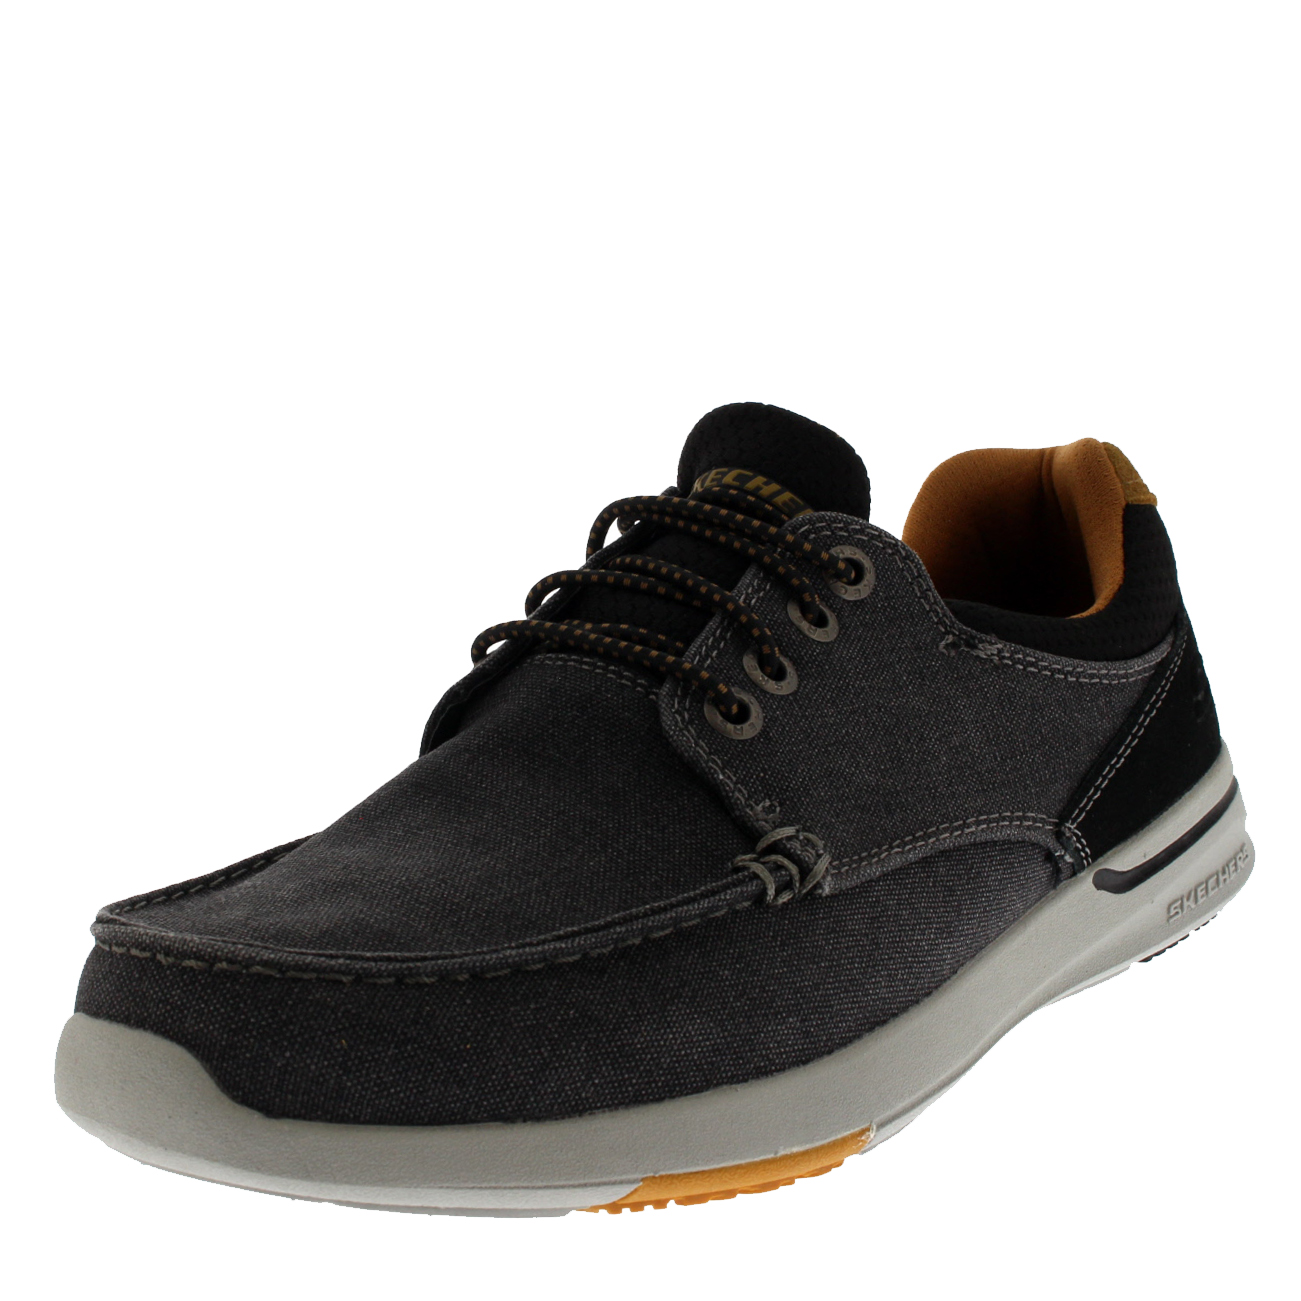 Skechers Eltent Mosen Relaxed Fit